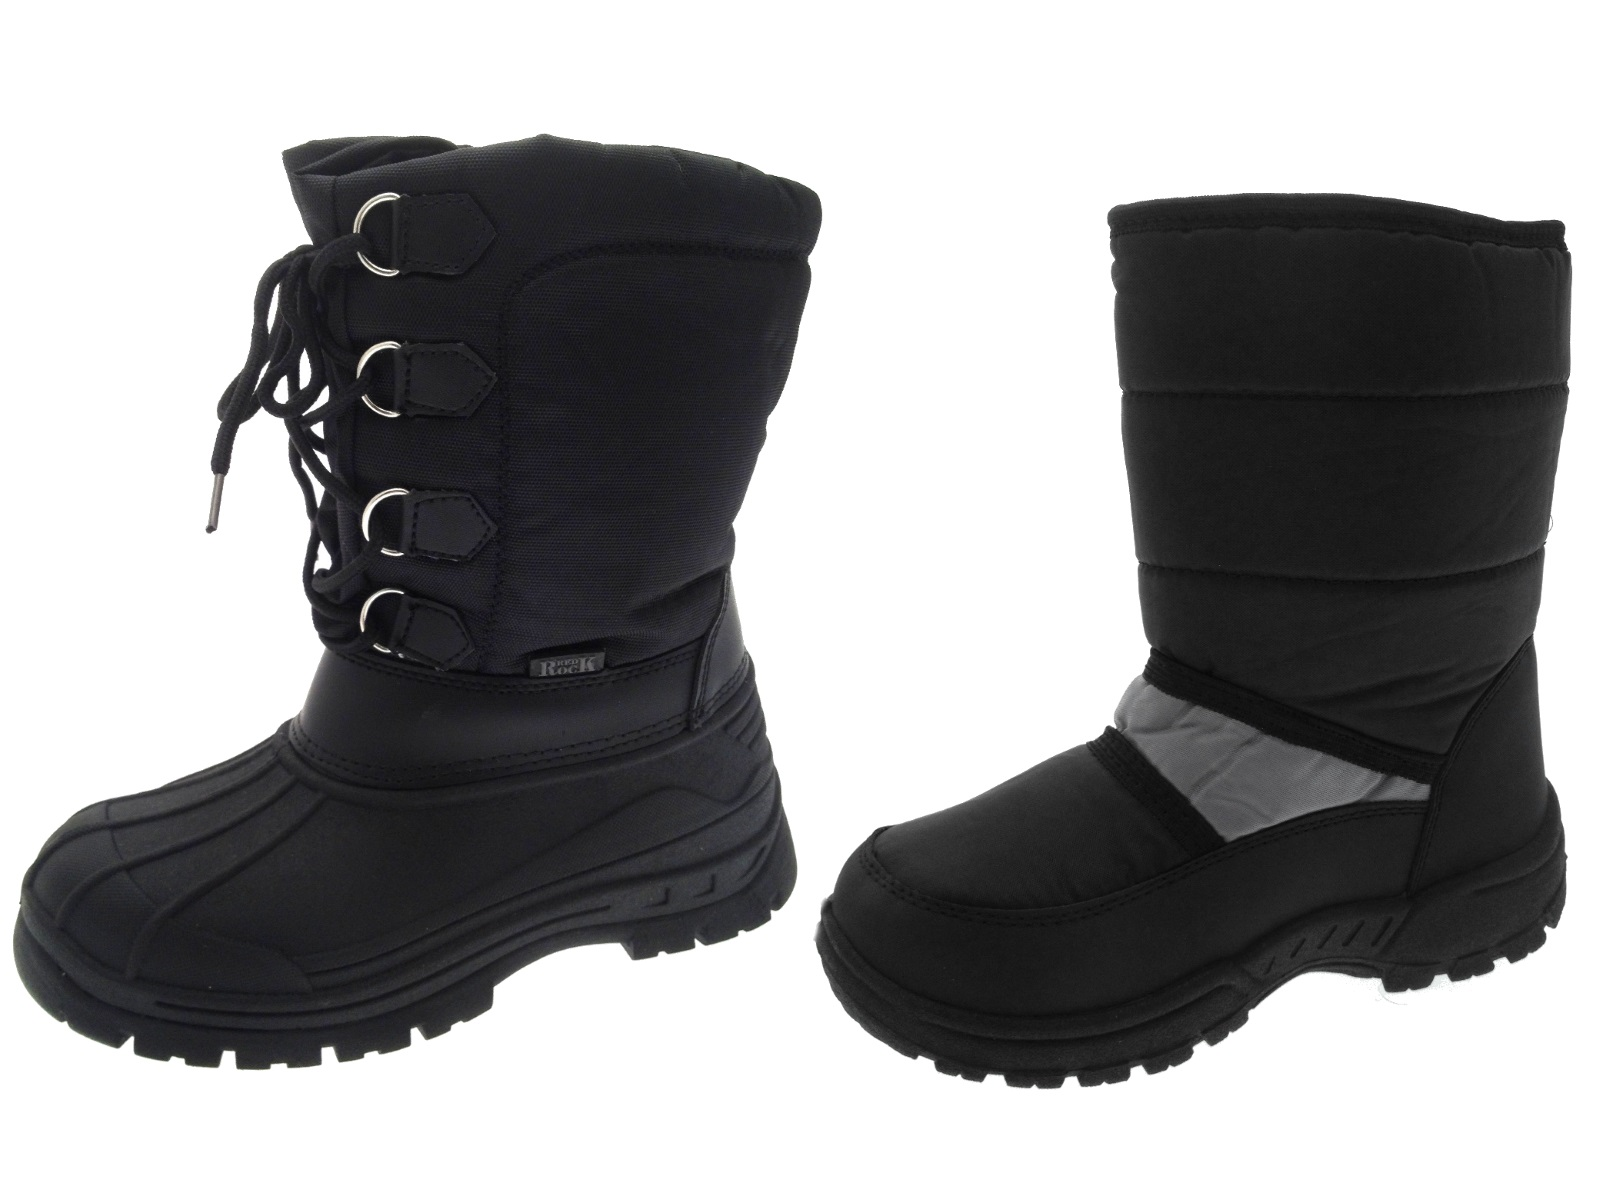 Warm Waterproof Snow Boots - Yu Boots